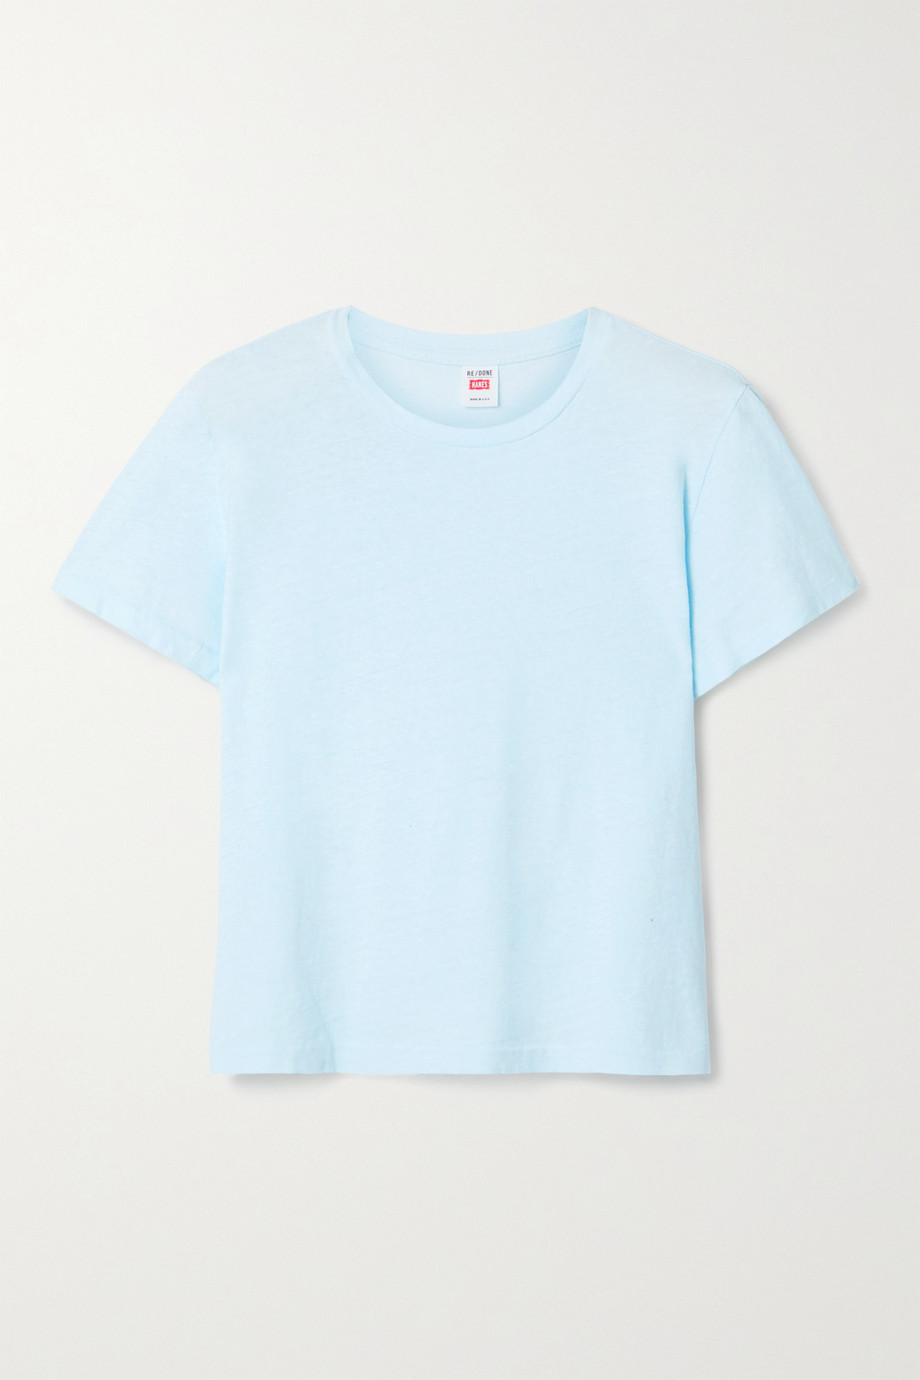 RE/DONE + Hanes Classic cotton-jersey T-shirt